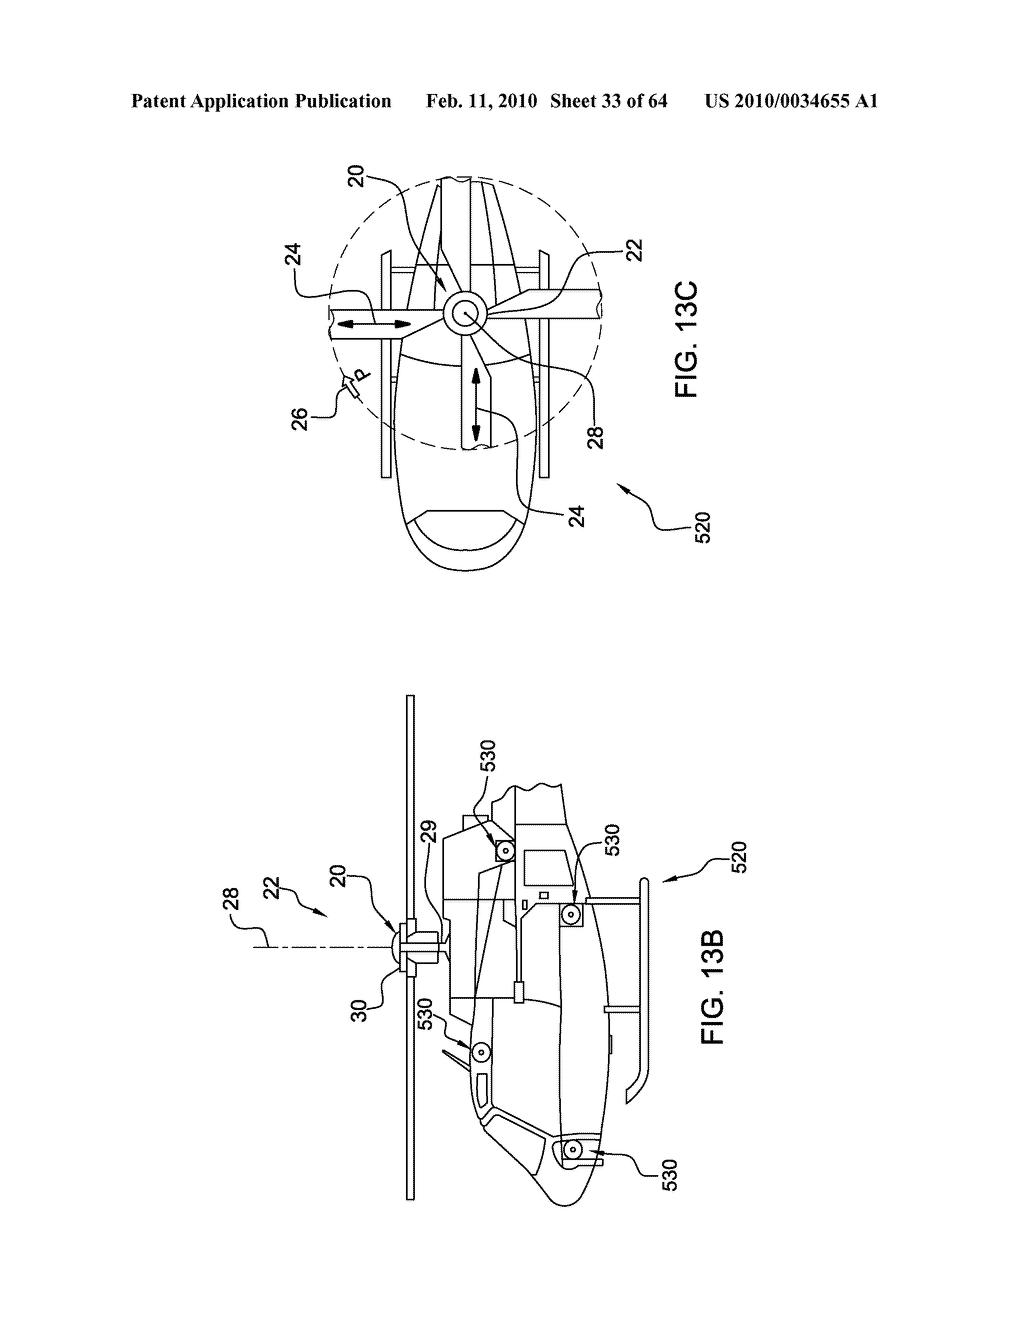 HELICOPTER HUB MOUNTED VIBRATION CONTROL AND CIRCULAR FORCE GENERATION SYSTEMS FOR CANCELING VIBRATIONS - diagram, schematic, and image 34